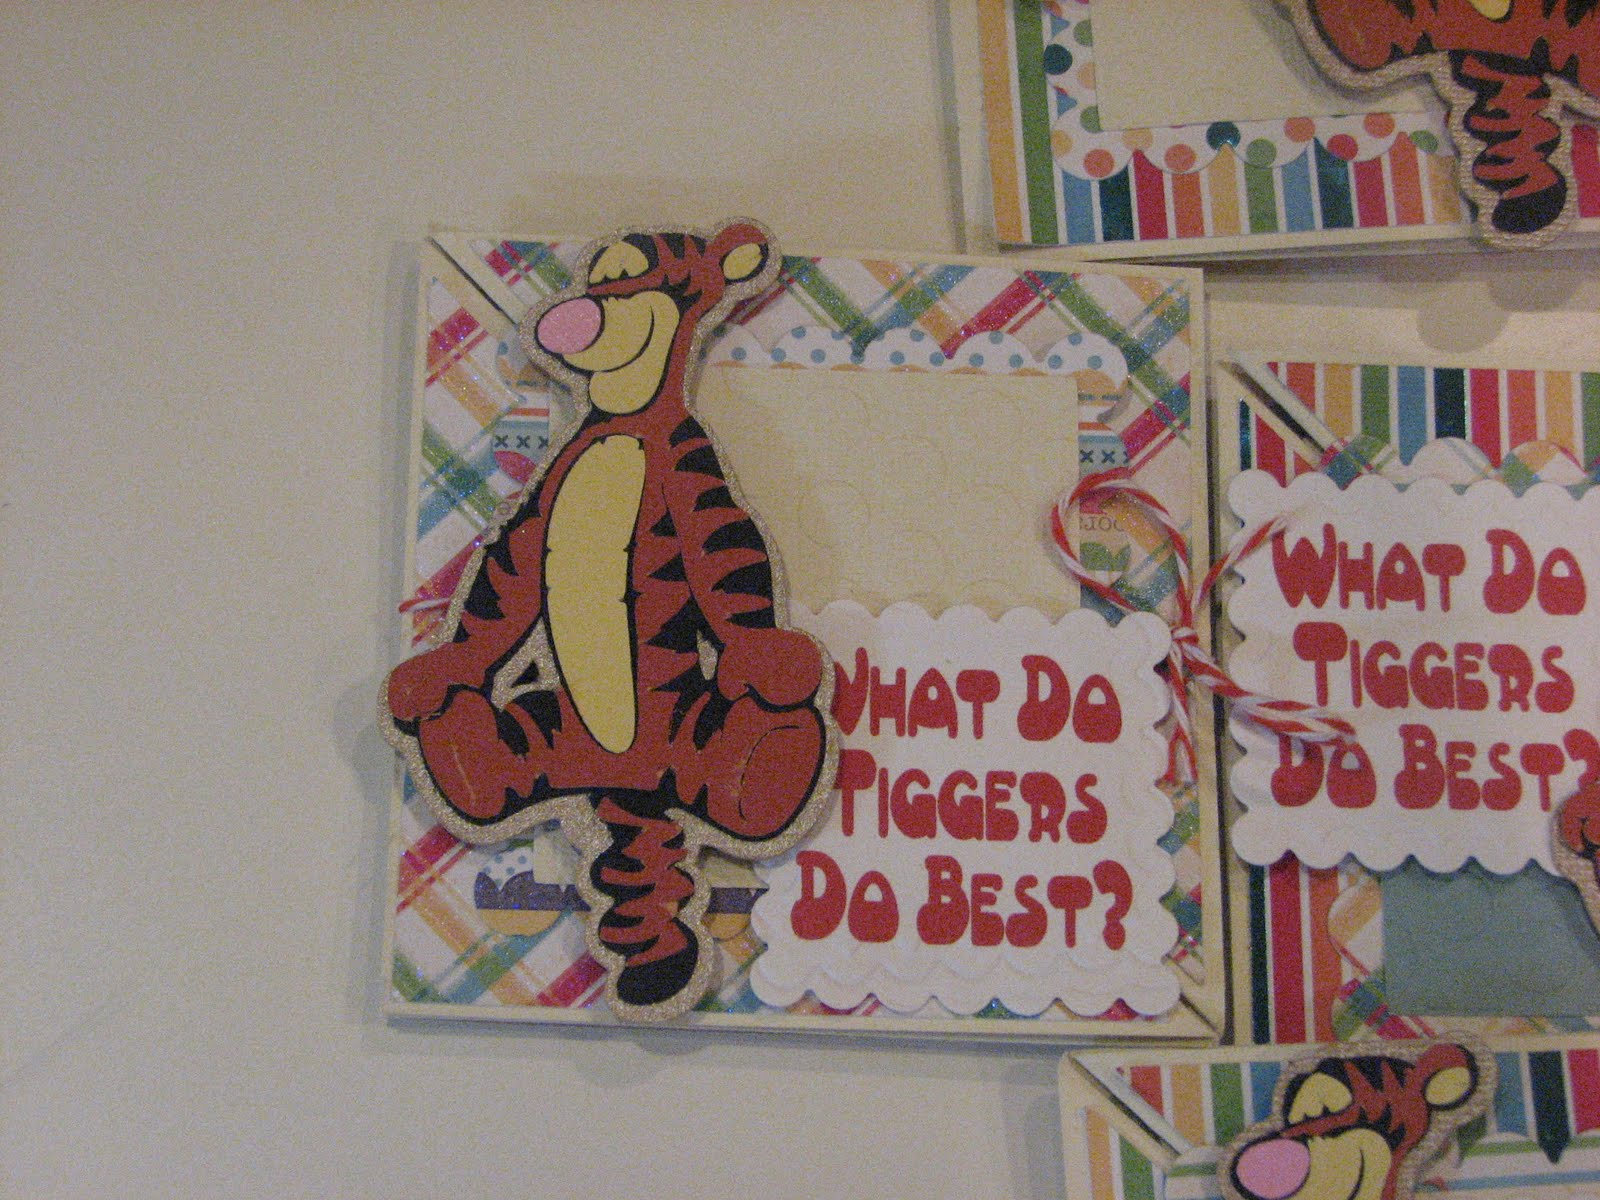 Sabriolet designs tigger birthday invitations his birthday is coming up and he has requested a tigger party of course i had to oblige these are his birthday parting invitations filmwisefo Gallery